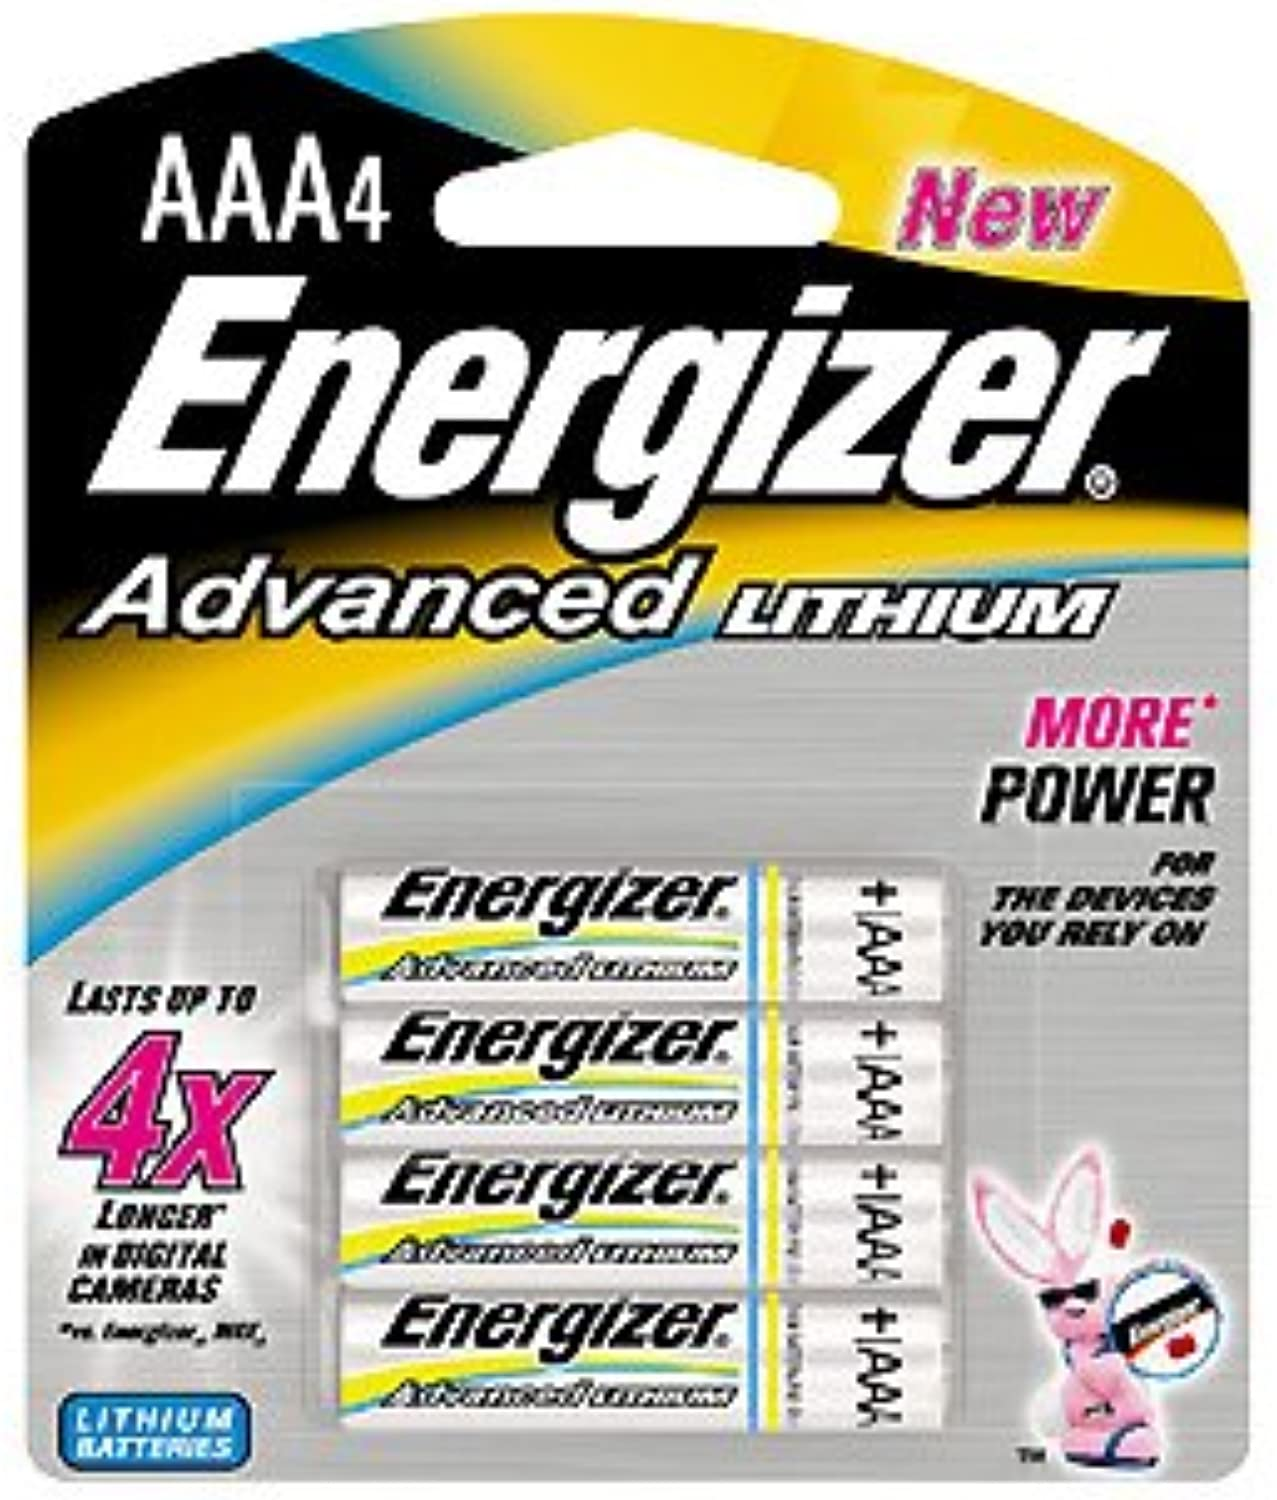 Energizer-New Advanced Lithium Aaa Battery Per 4 Leak Resistant Construction 10 Year Storage Life